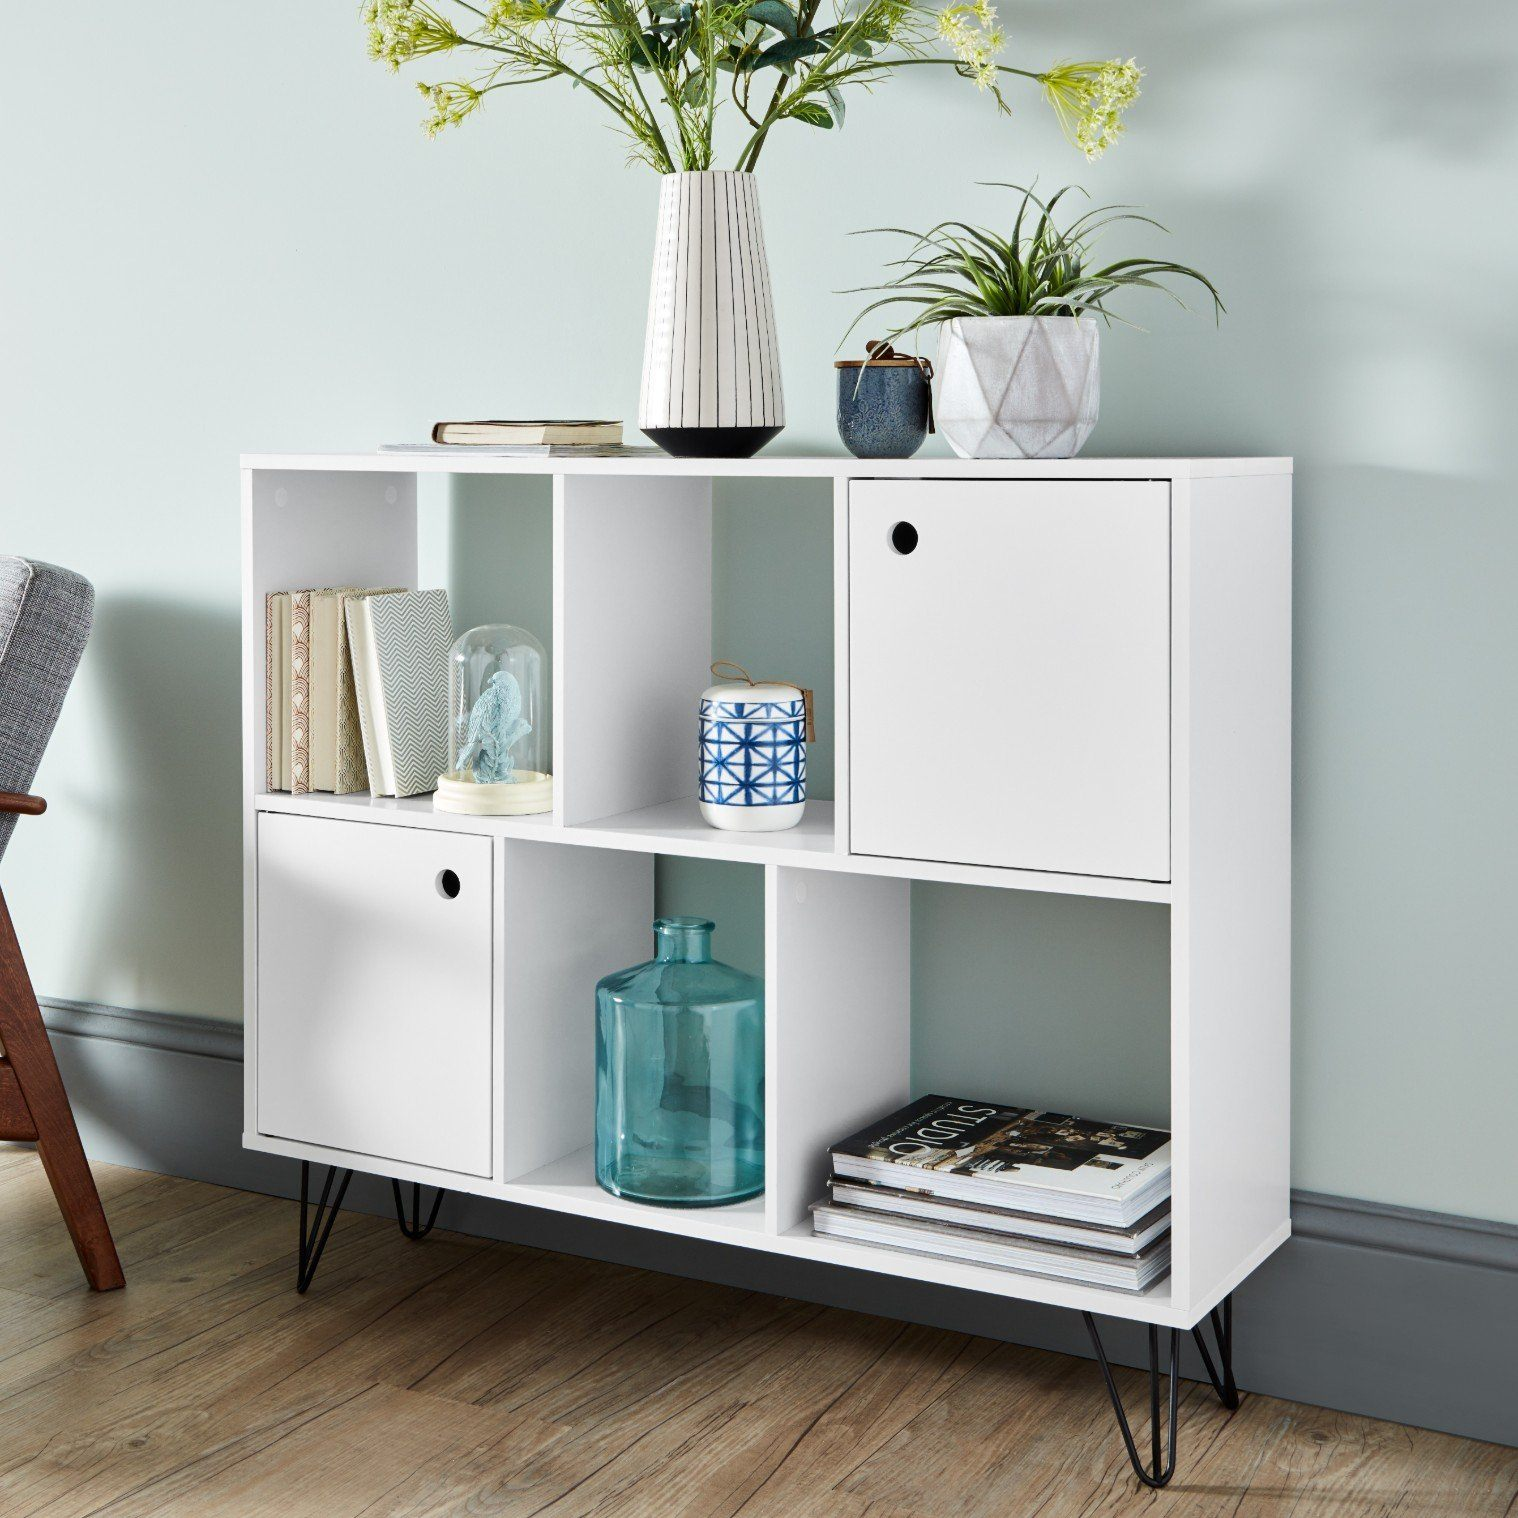 Anderson White Mid Century Modern Scandi Style Shelving Unit - Laura James